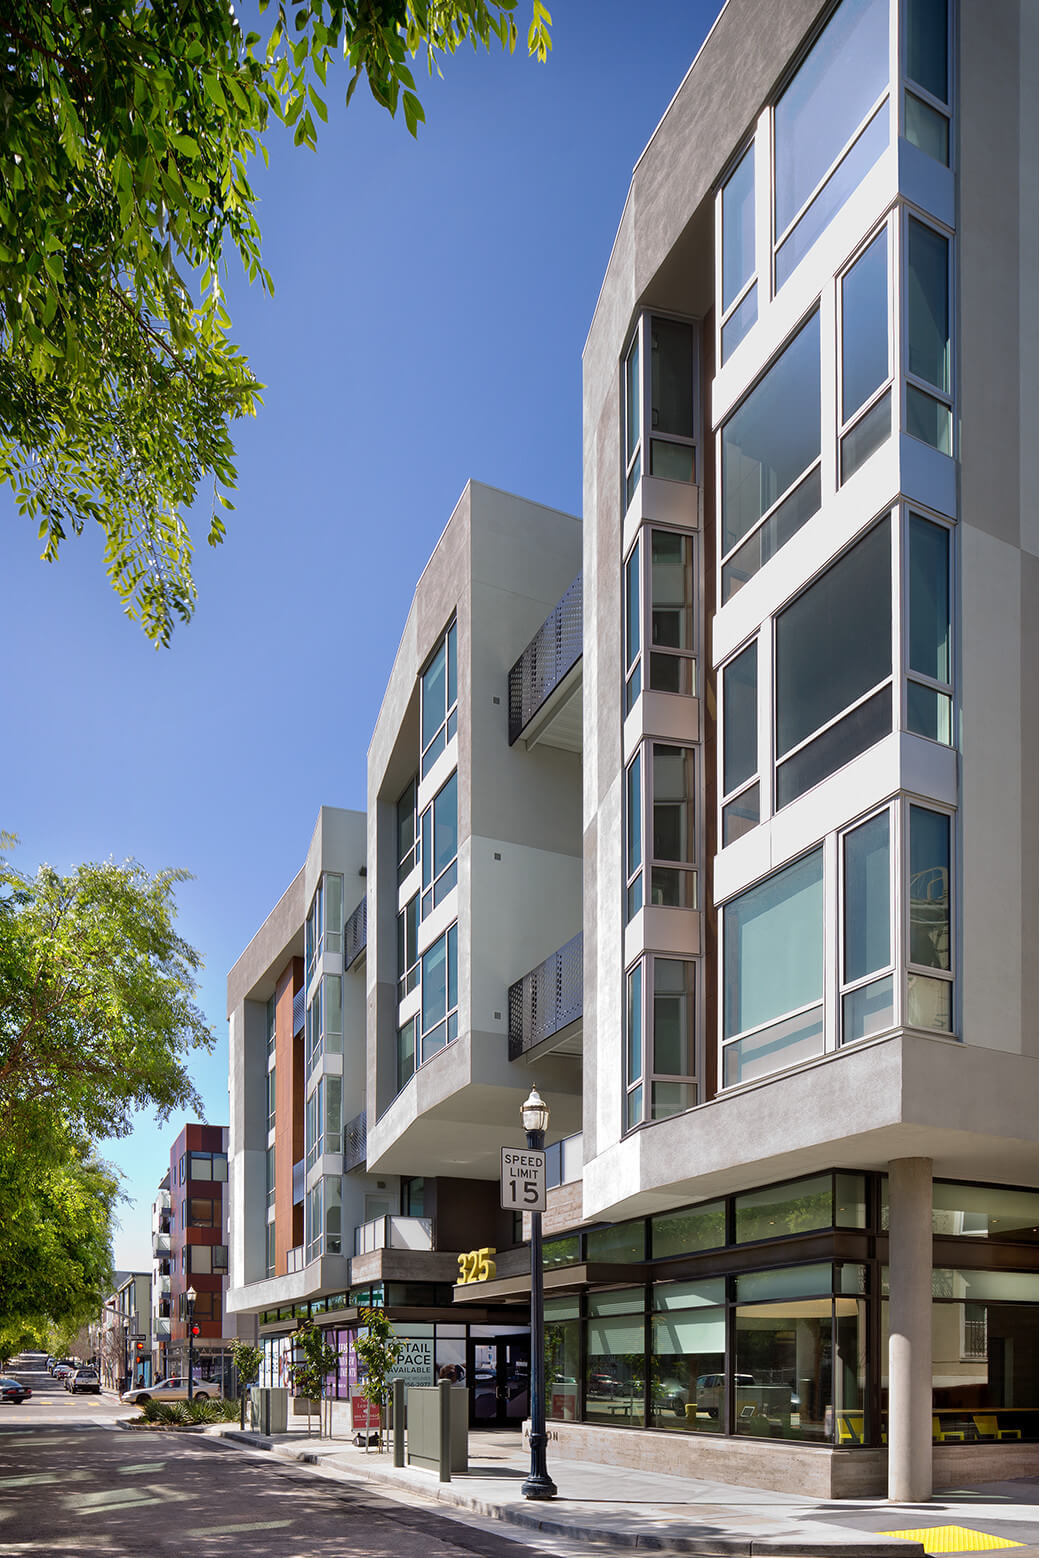 Avalon Apartments Studio: Kennerly Architecture & Planning